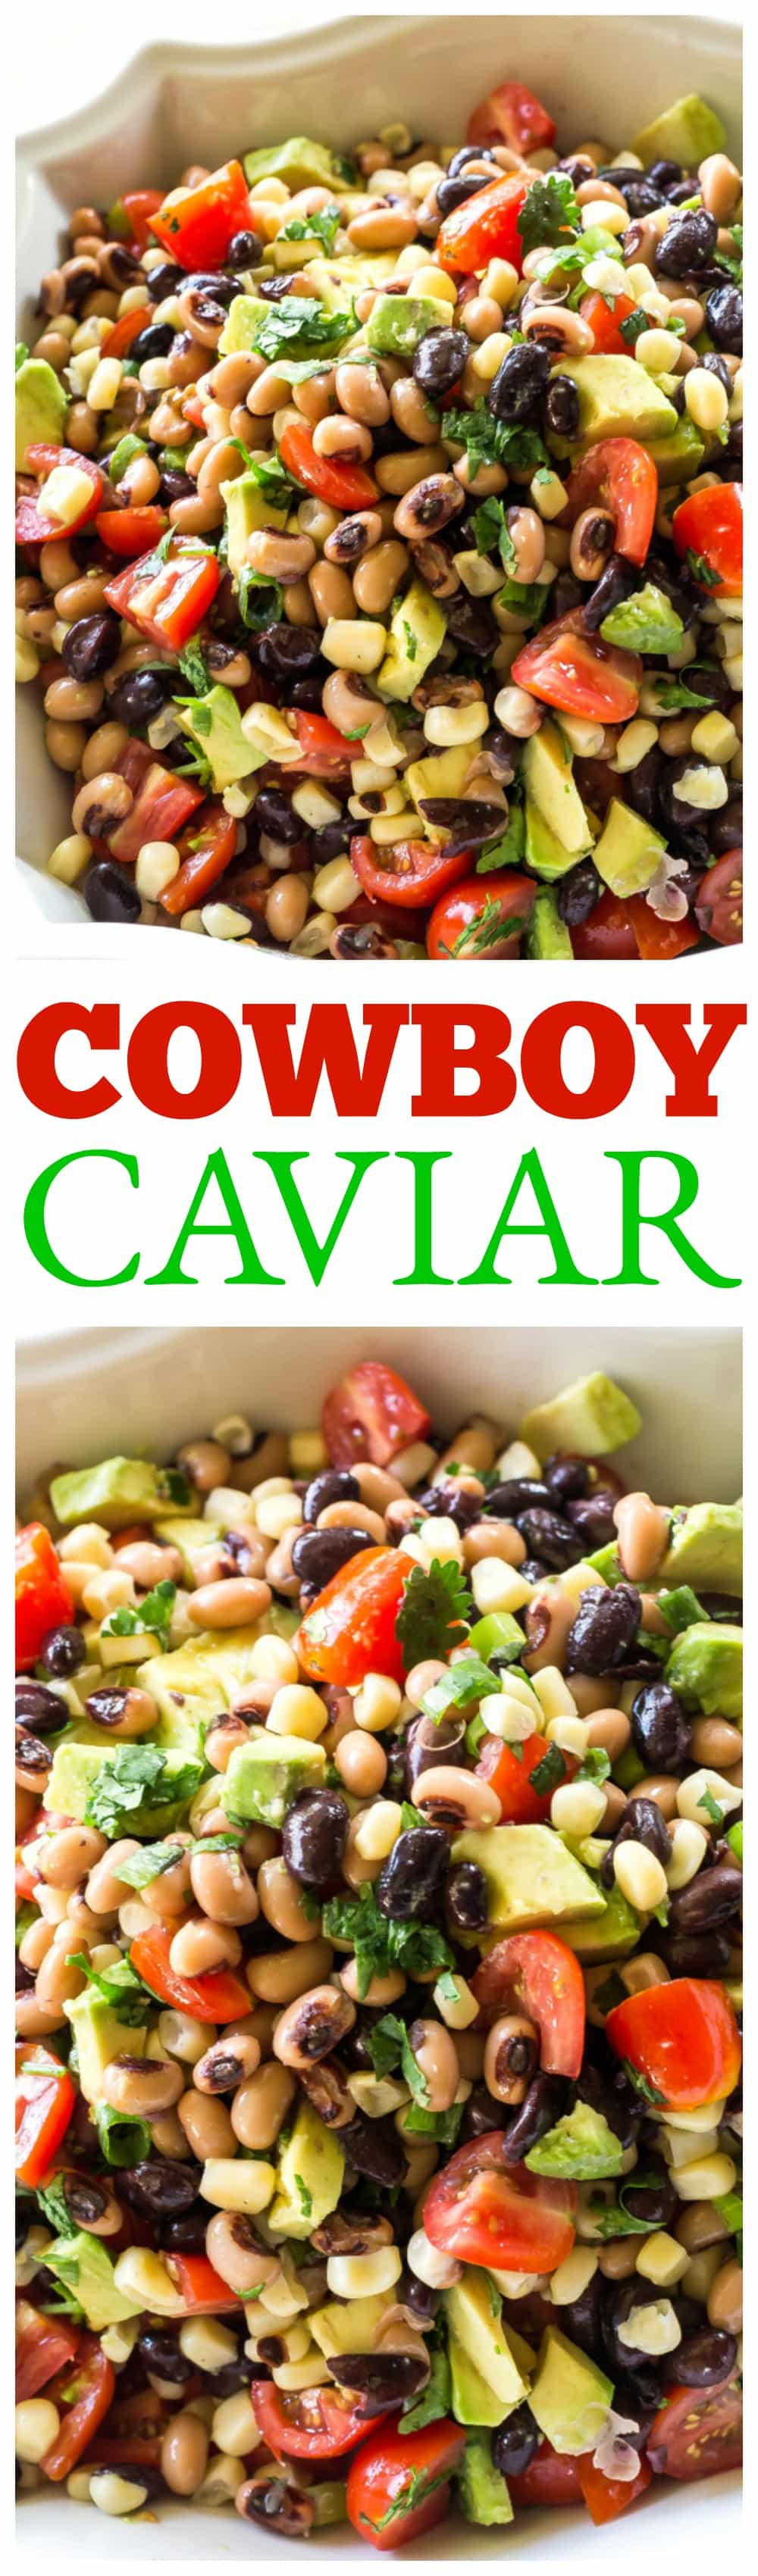 Cowboy Caviar is one of my favorite recipes to bring to a potluck or BBQ. Black beans, black eyed peas, avocado, tomatoes, and shoepeg corn tossed in a light zesty Italian dressing. Eat with chips or just a fork! #cowboy #caviar #potluck #side #bbq #salad